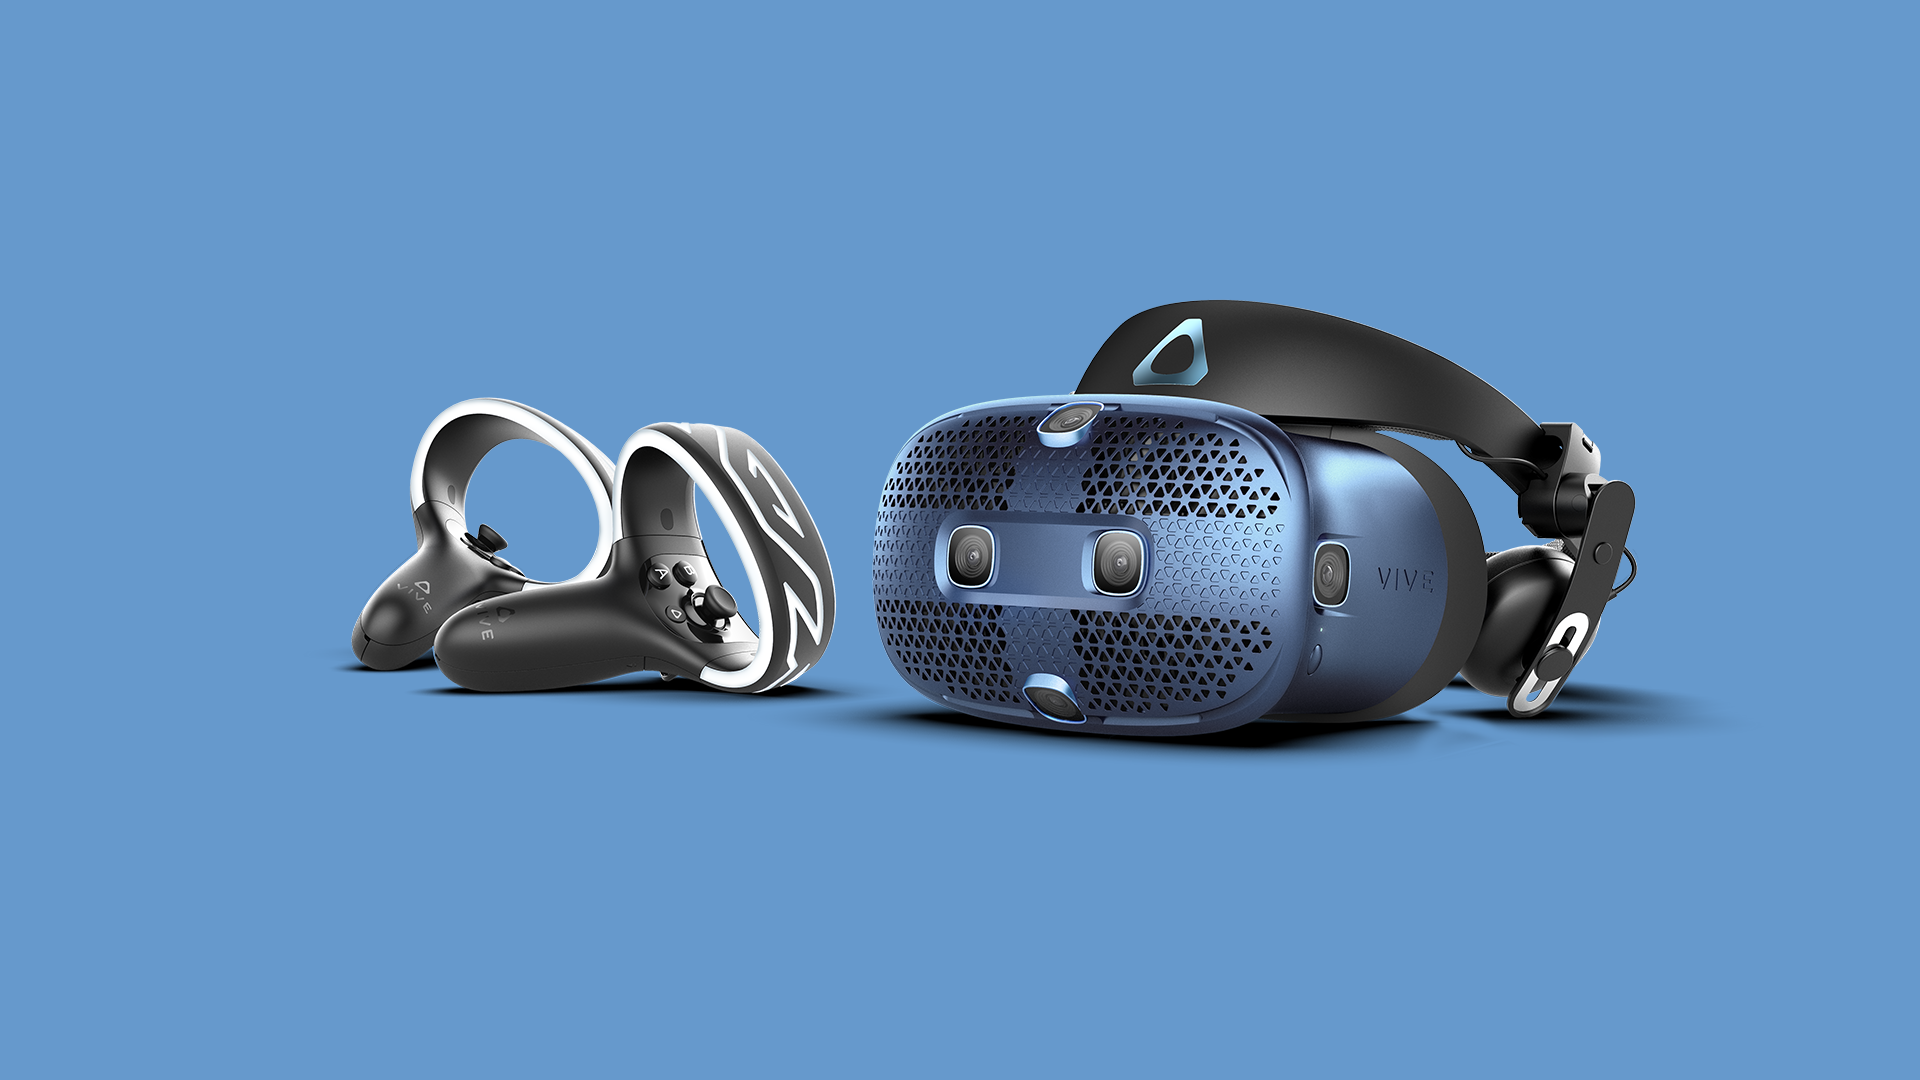 HTC's Vive Cosmos VR headset will be available next Friday